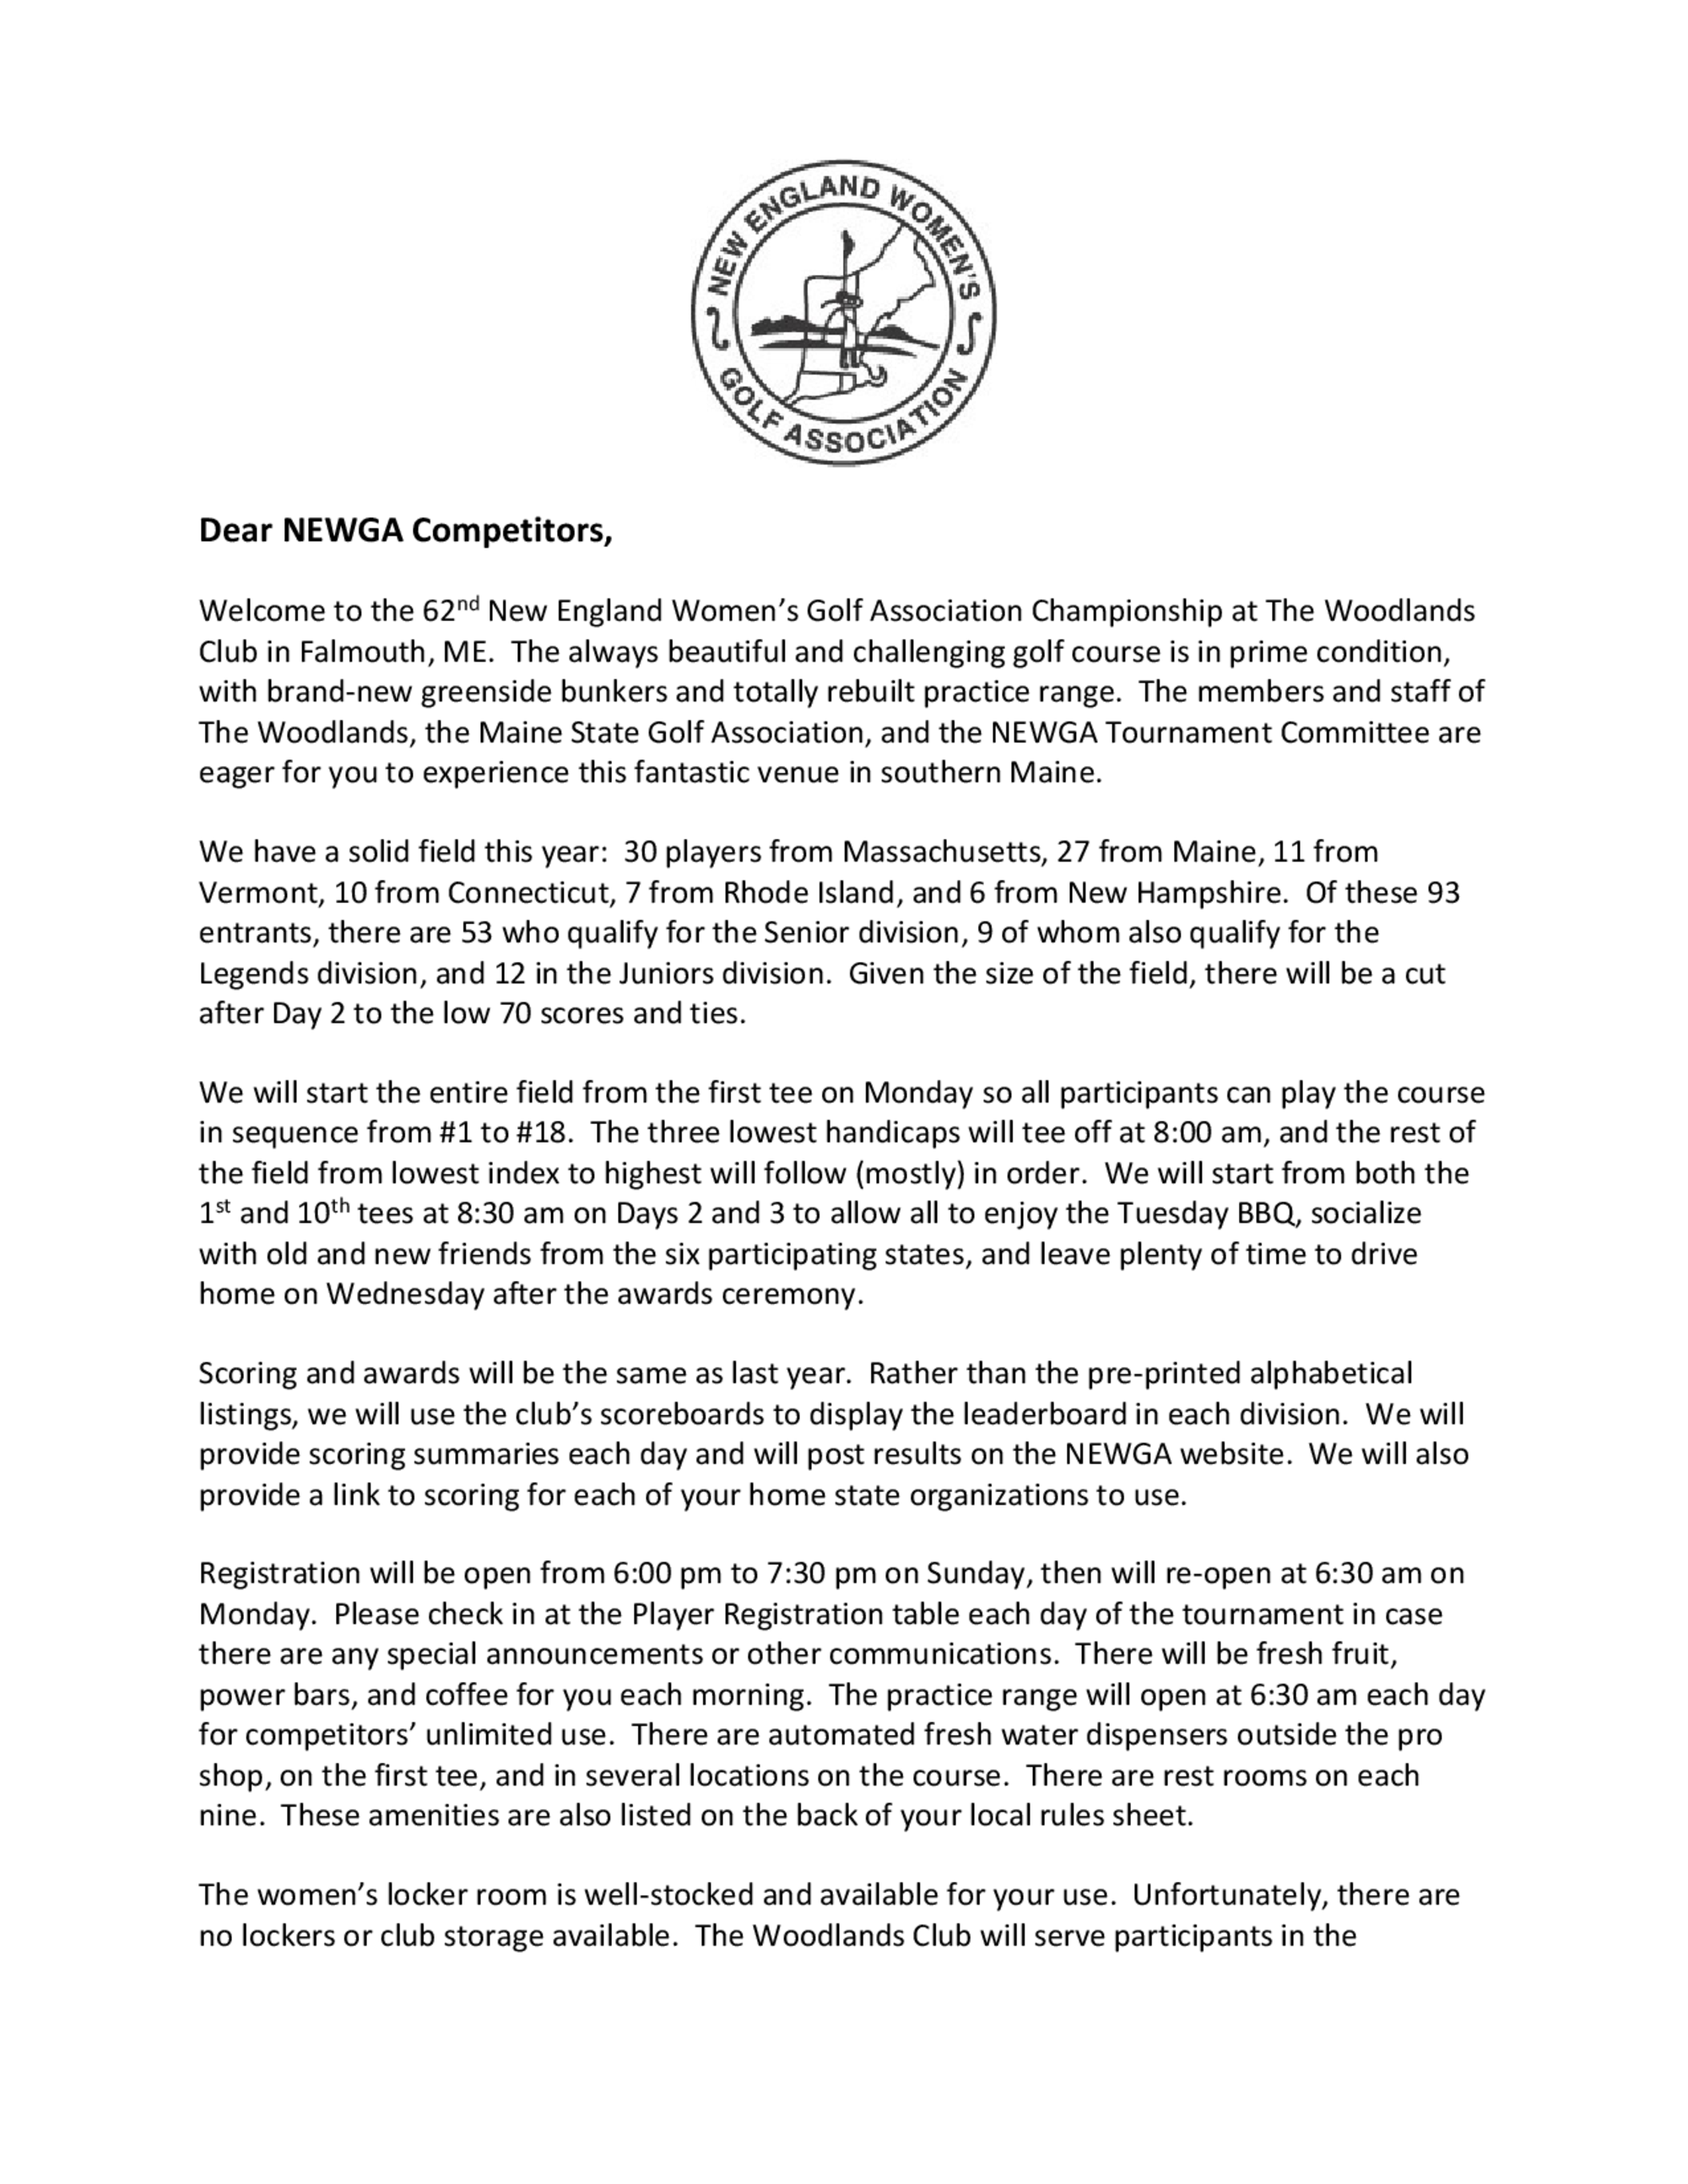 Newga welcome letter 1